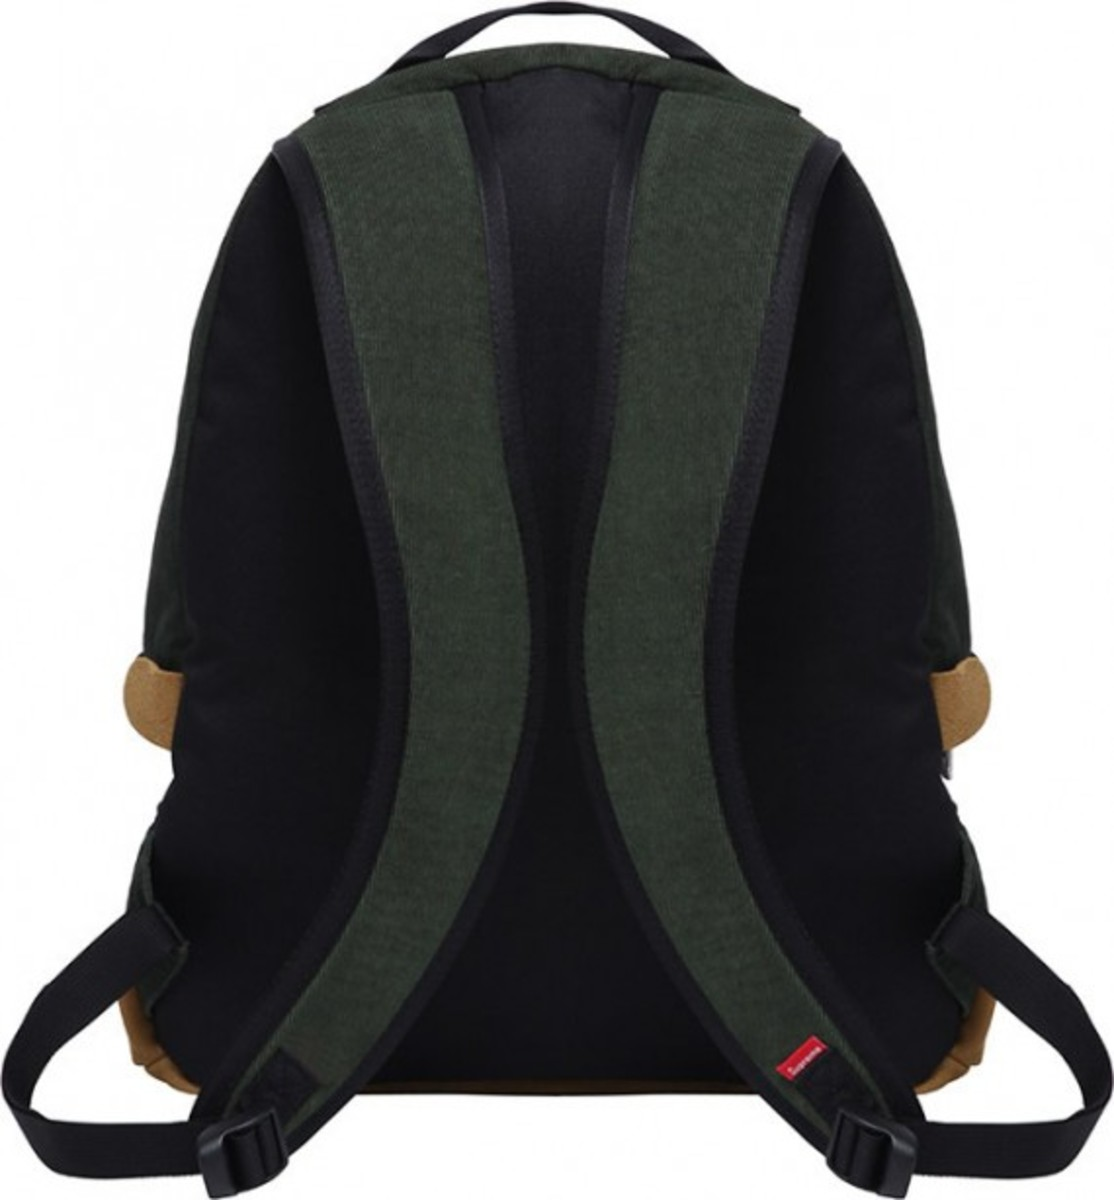 supreme-the-north-face-medium-day-pack-backpack-02